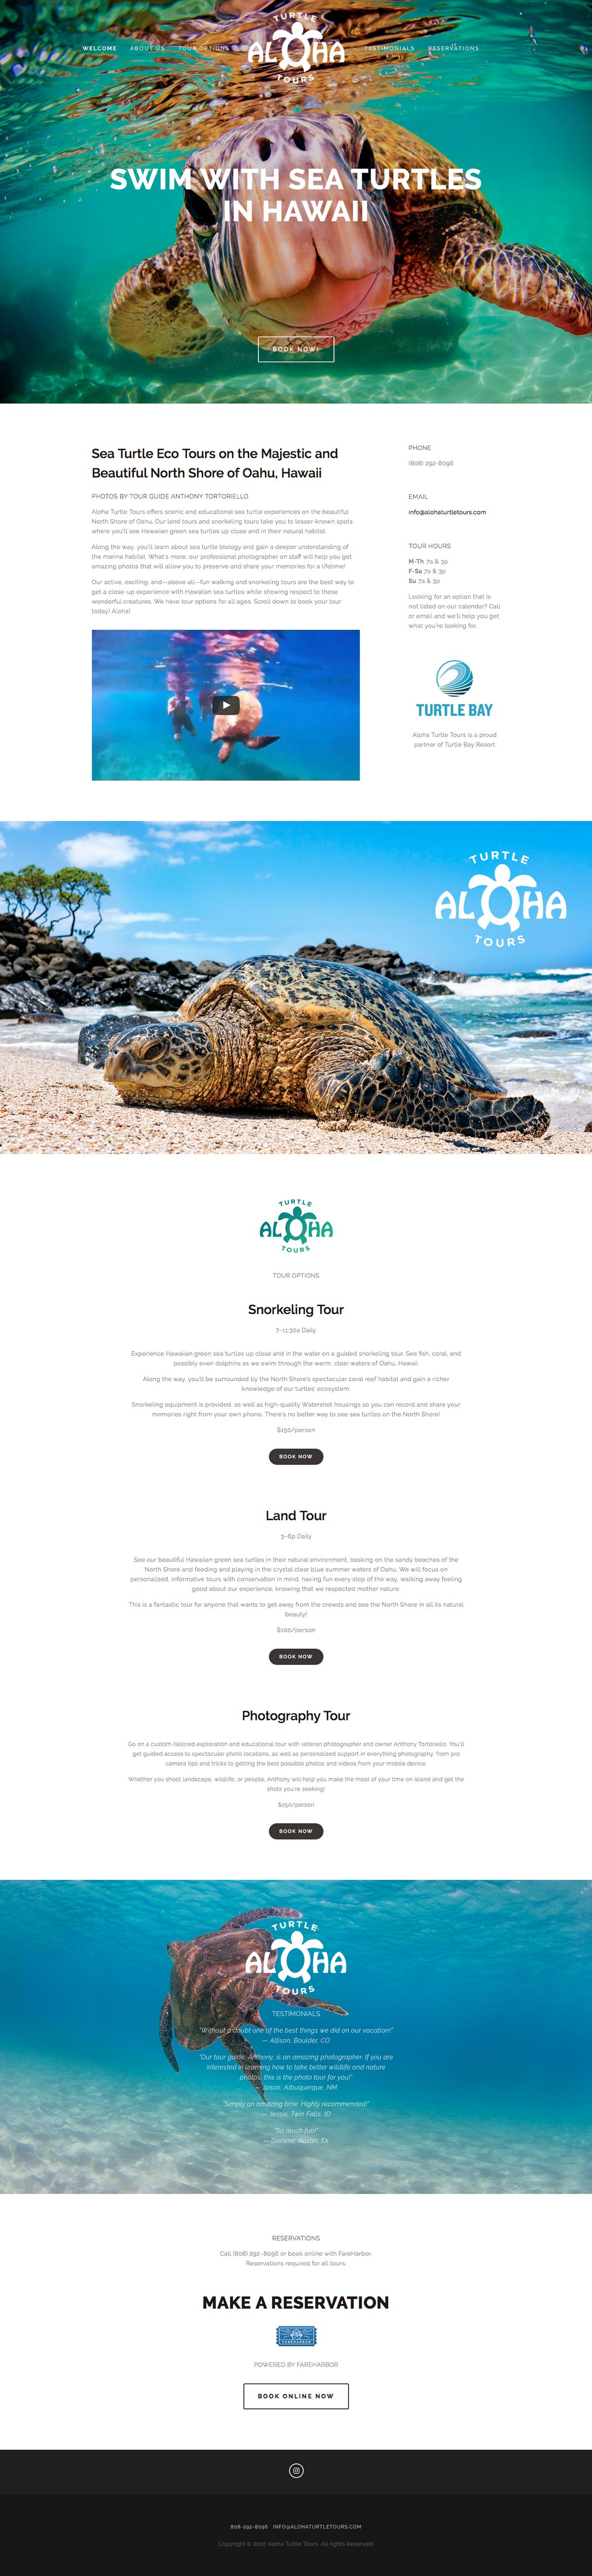 Aloha Turtle Tours home page screenshot 2016-07